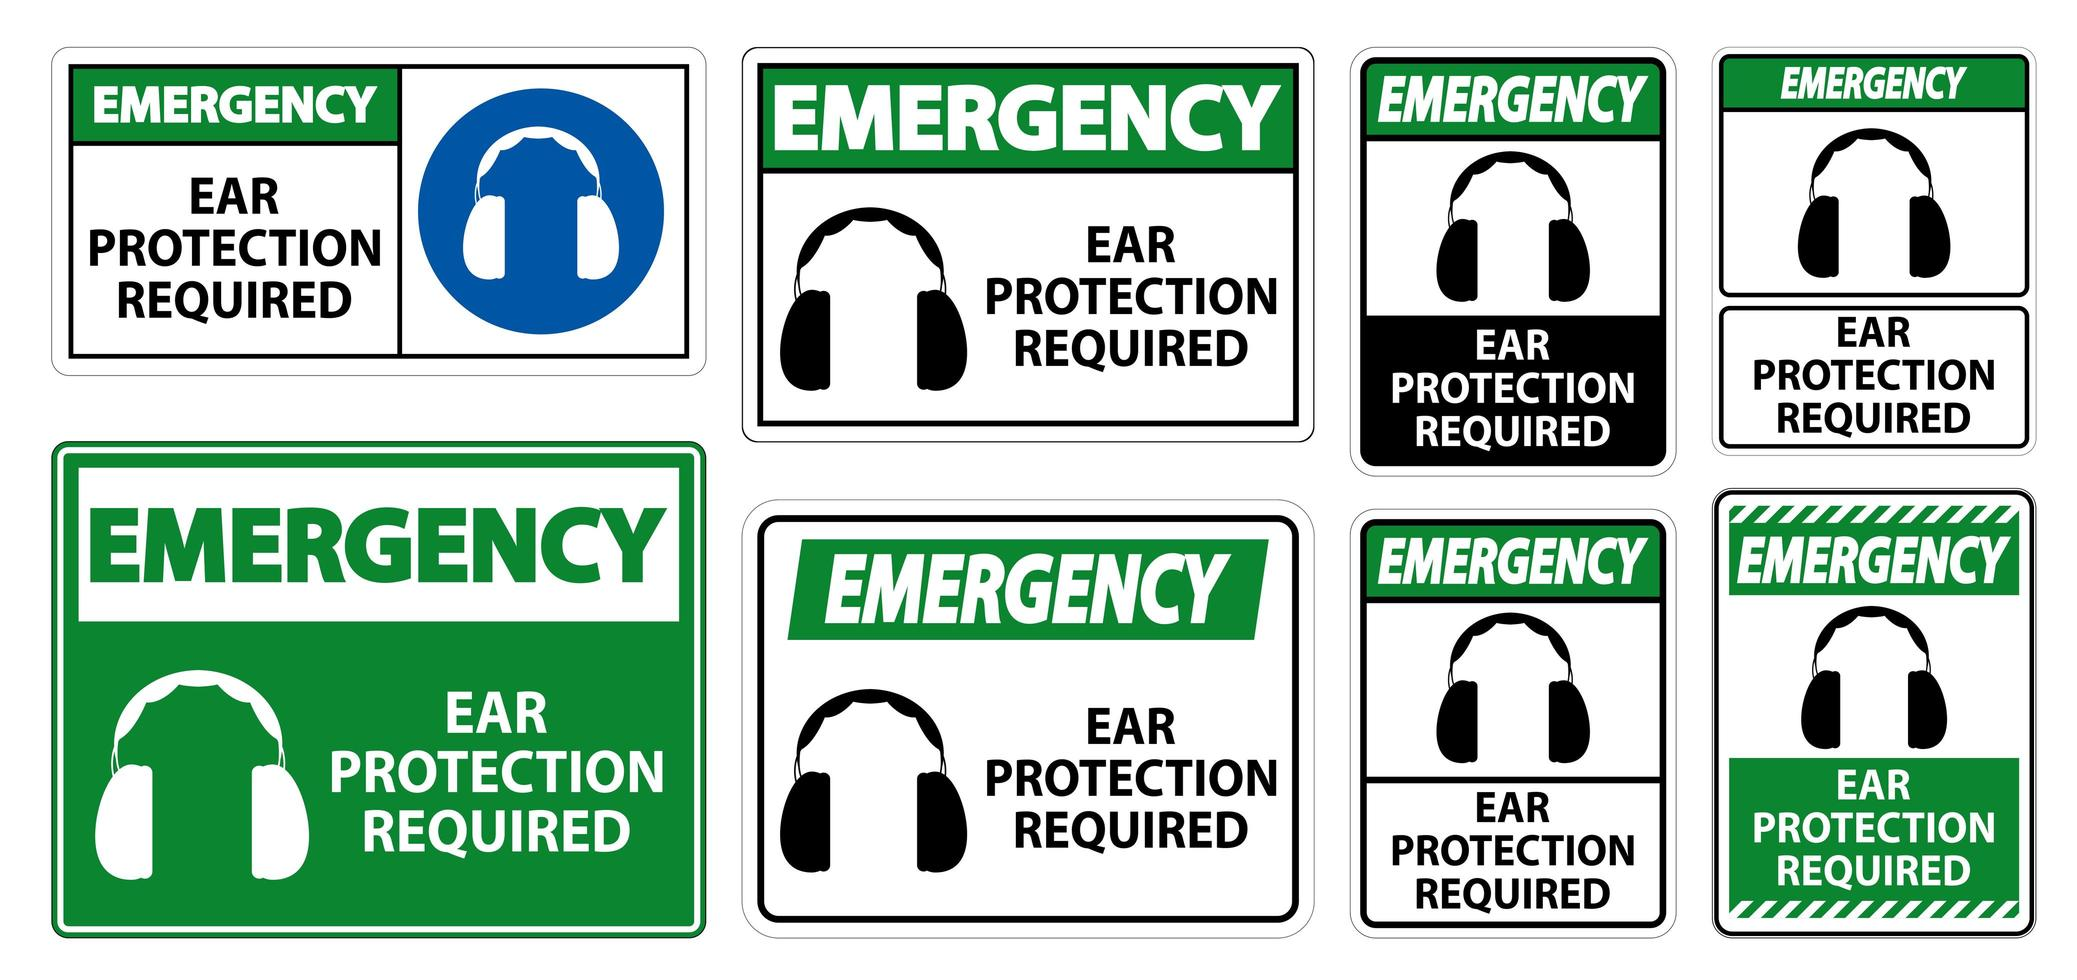 Emergency Ear Protection Required Symbol Sign vector